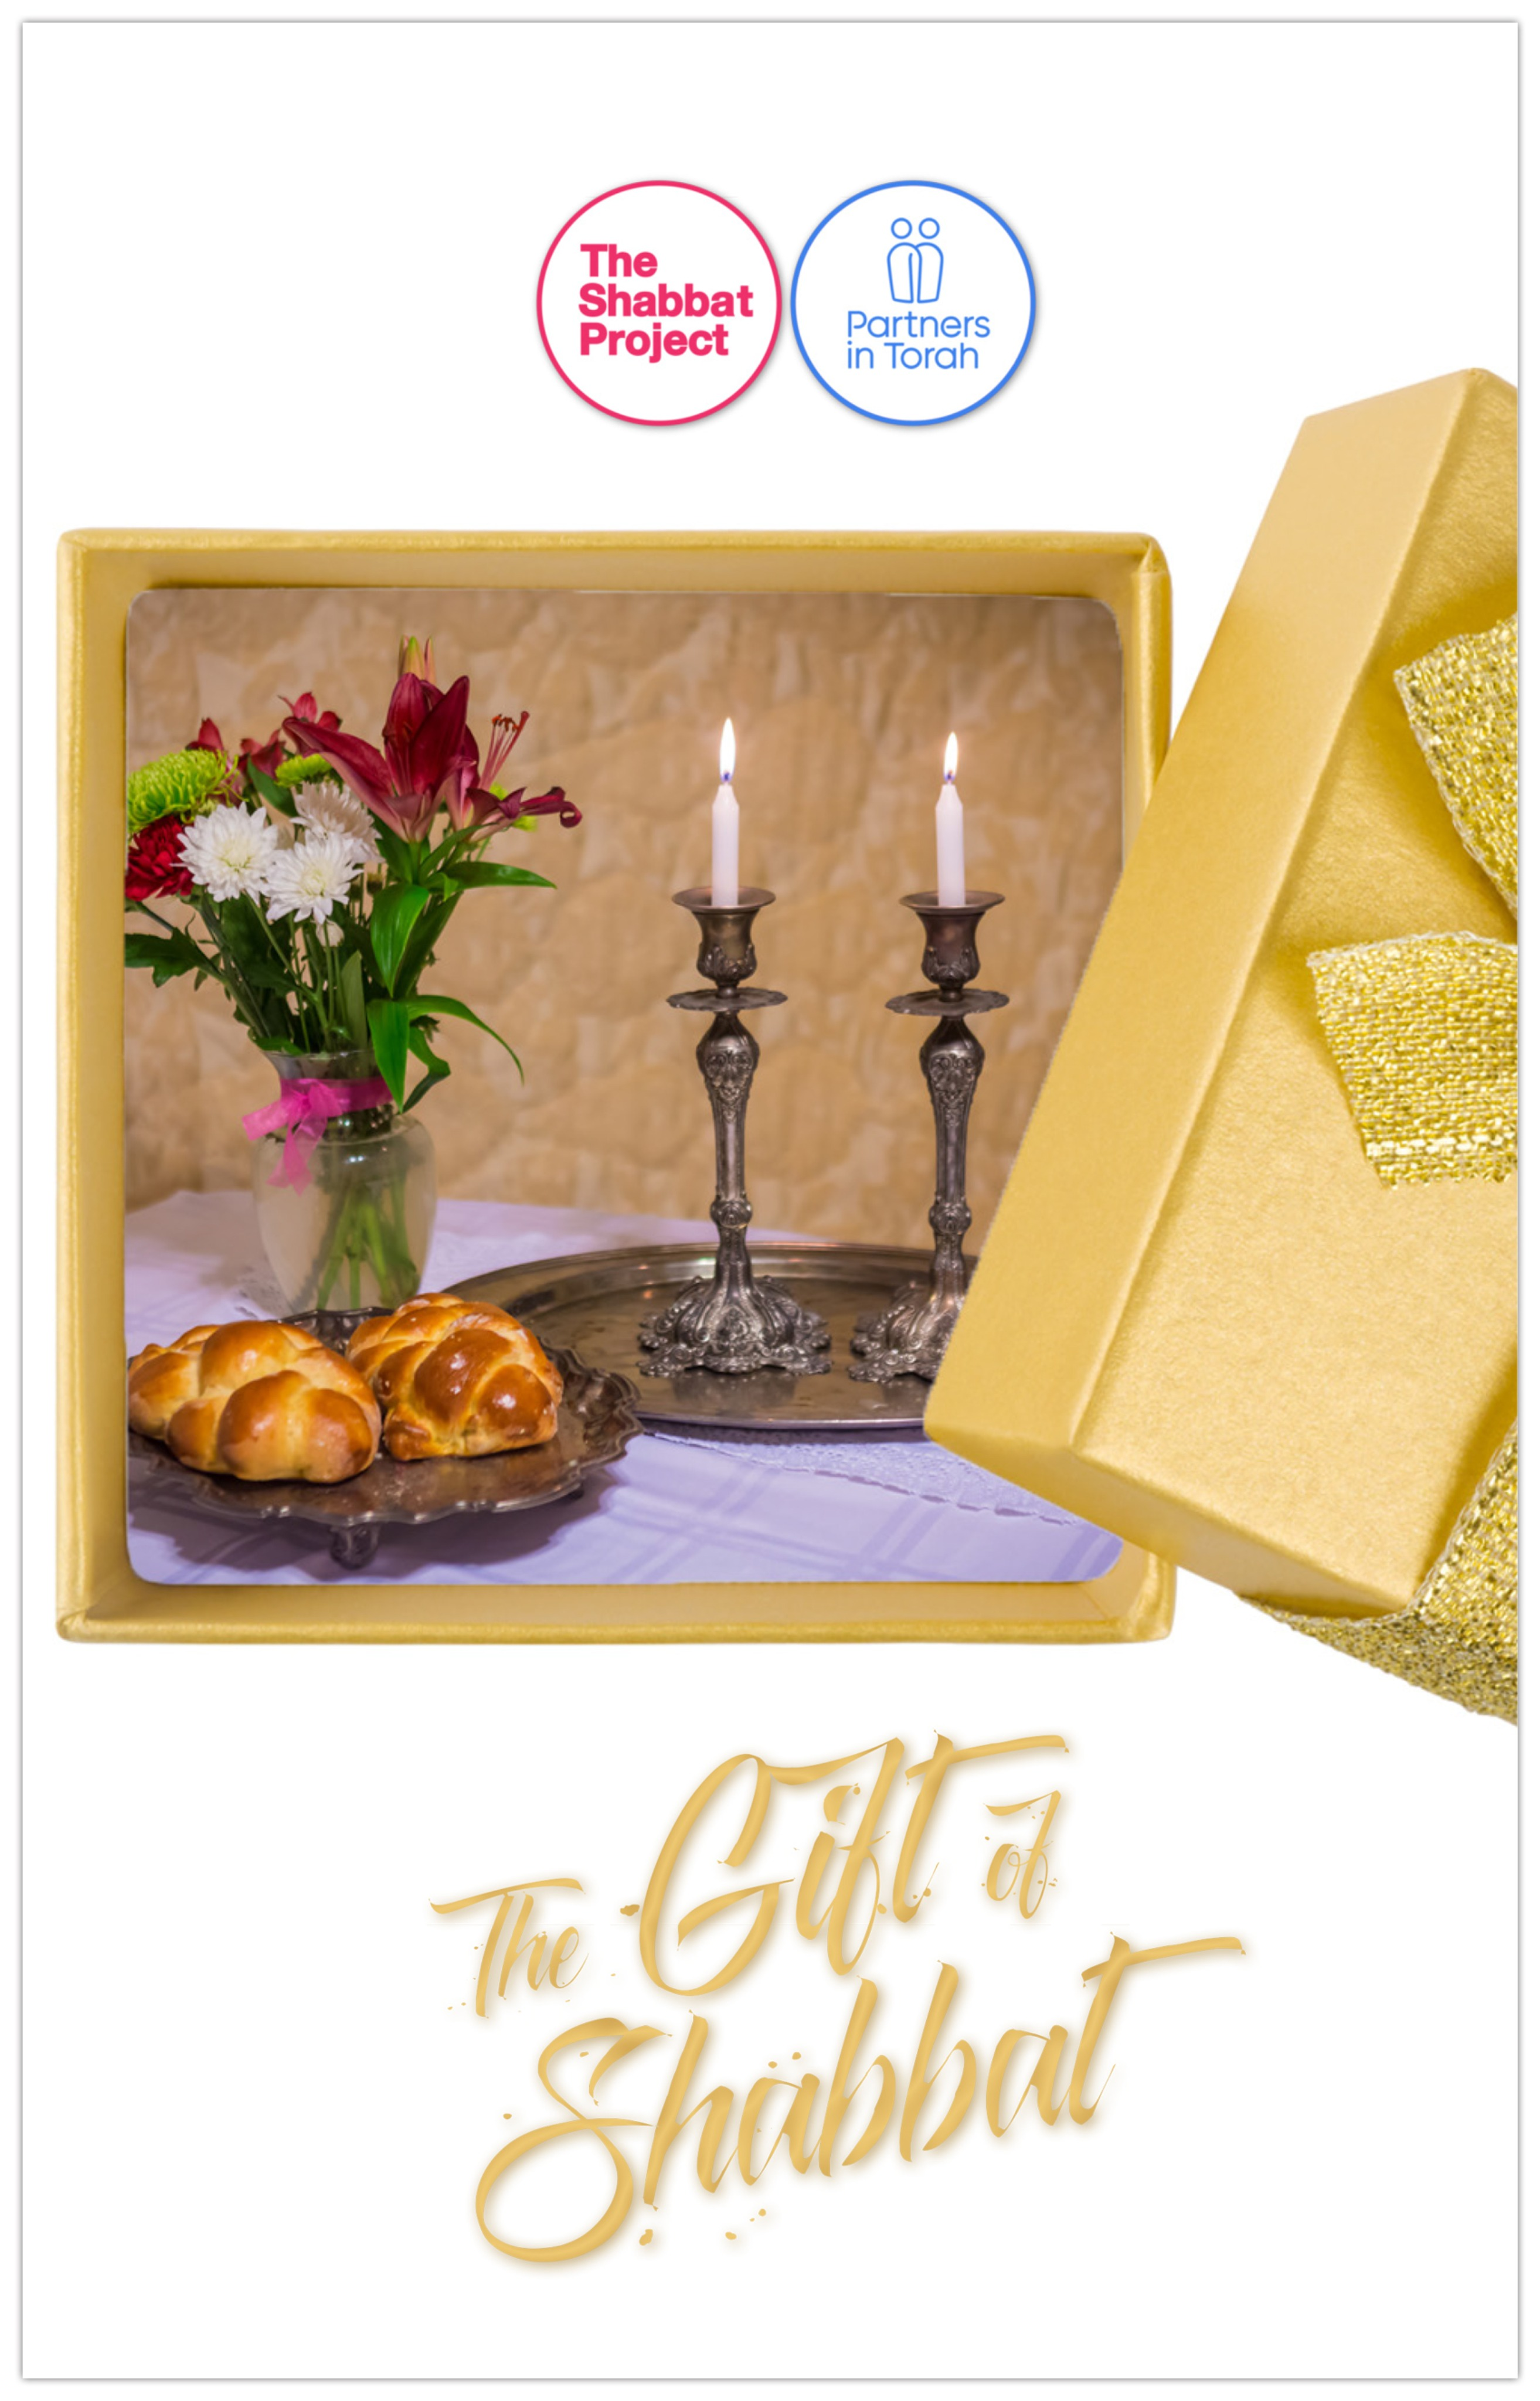 The Gift of Shabbat